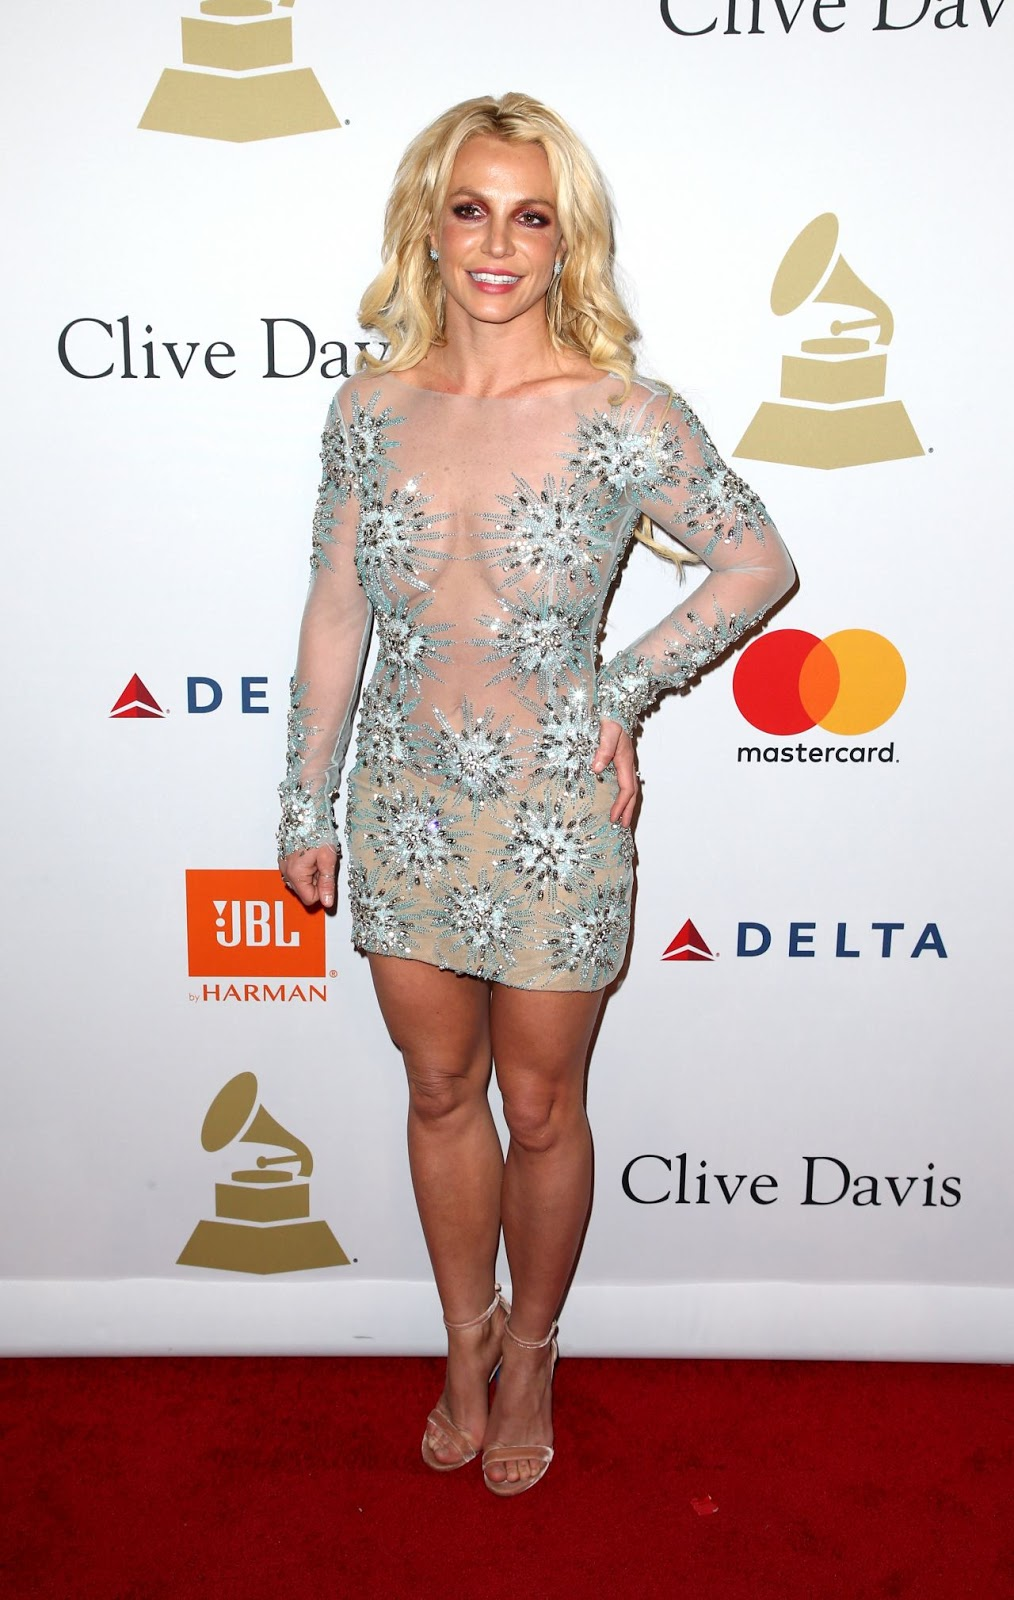 Britney Spears bares cleavage in sheer mini dress at the Clive Davis Pre-Grammy party in LA